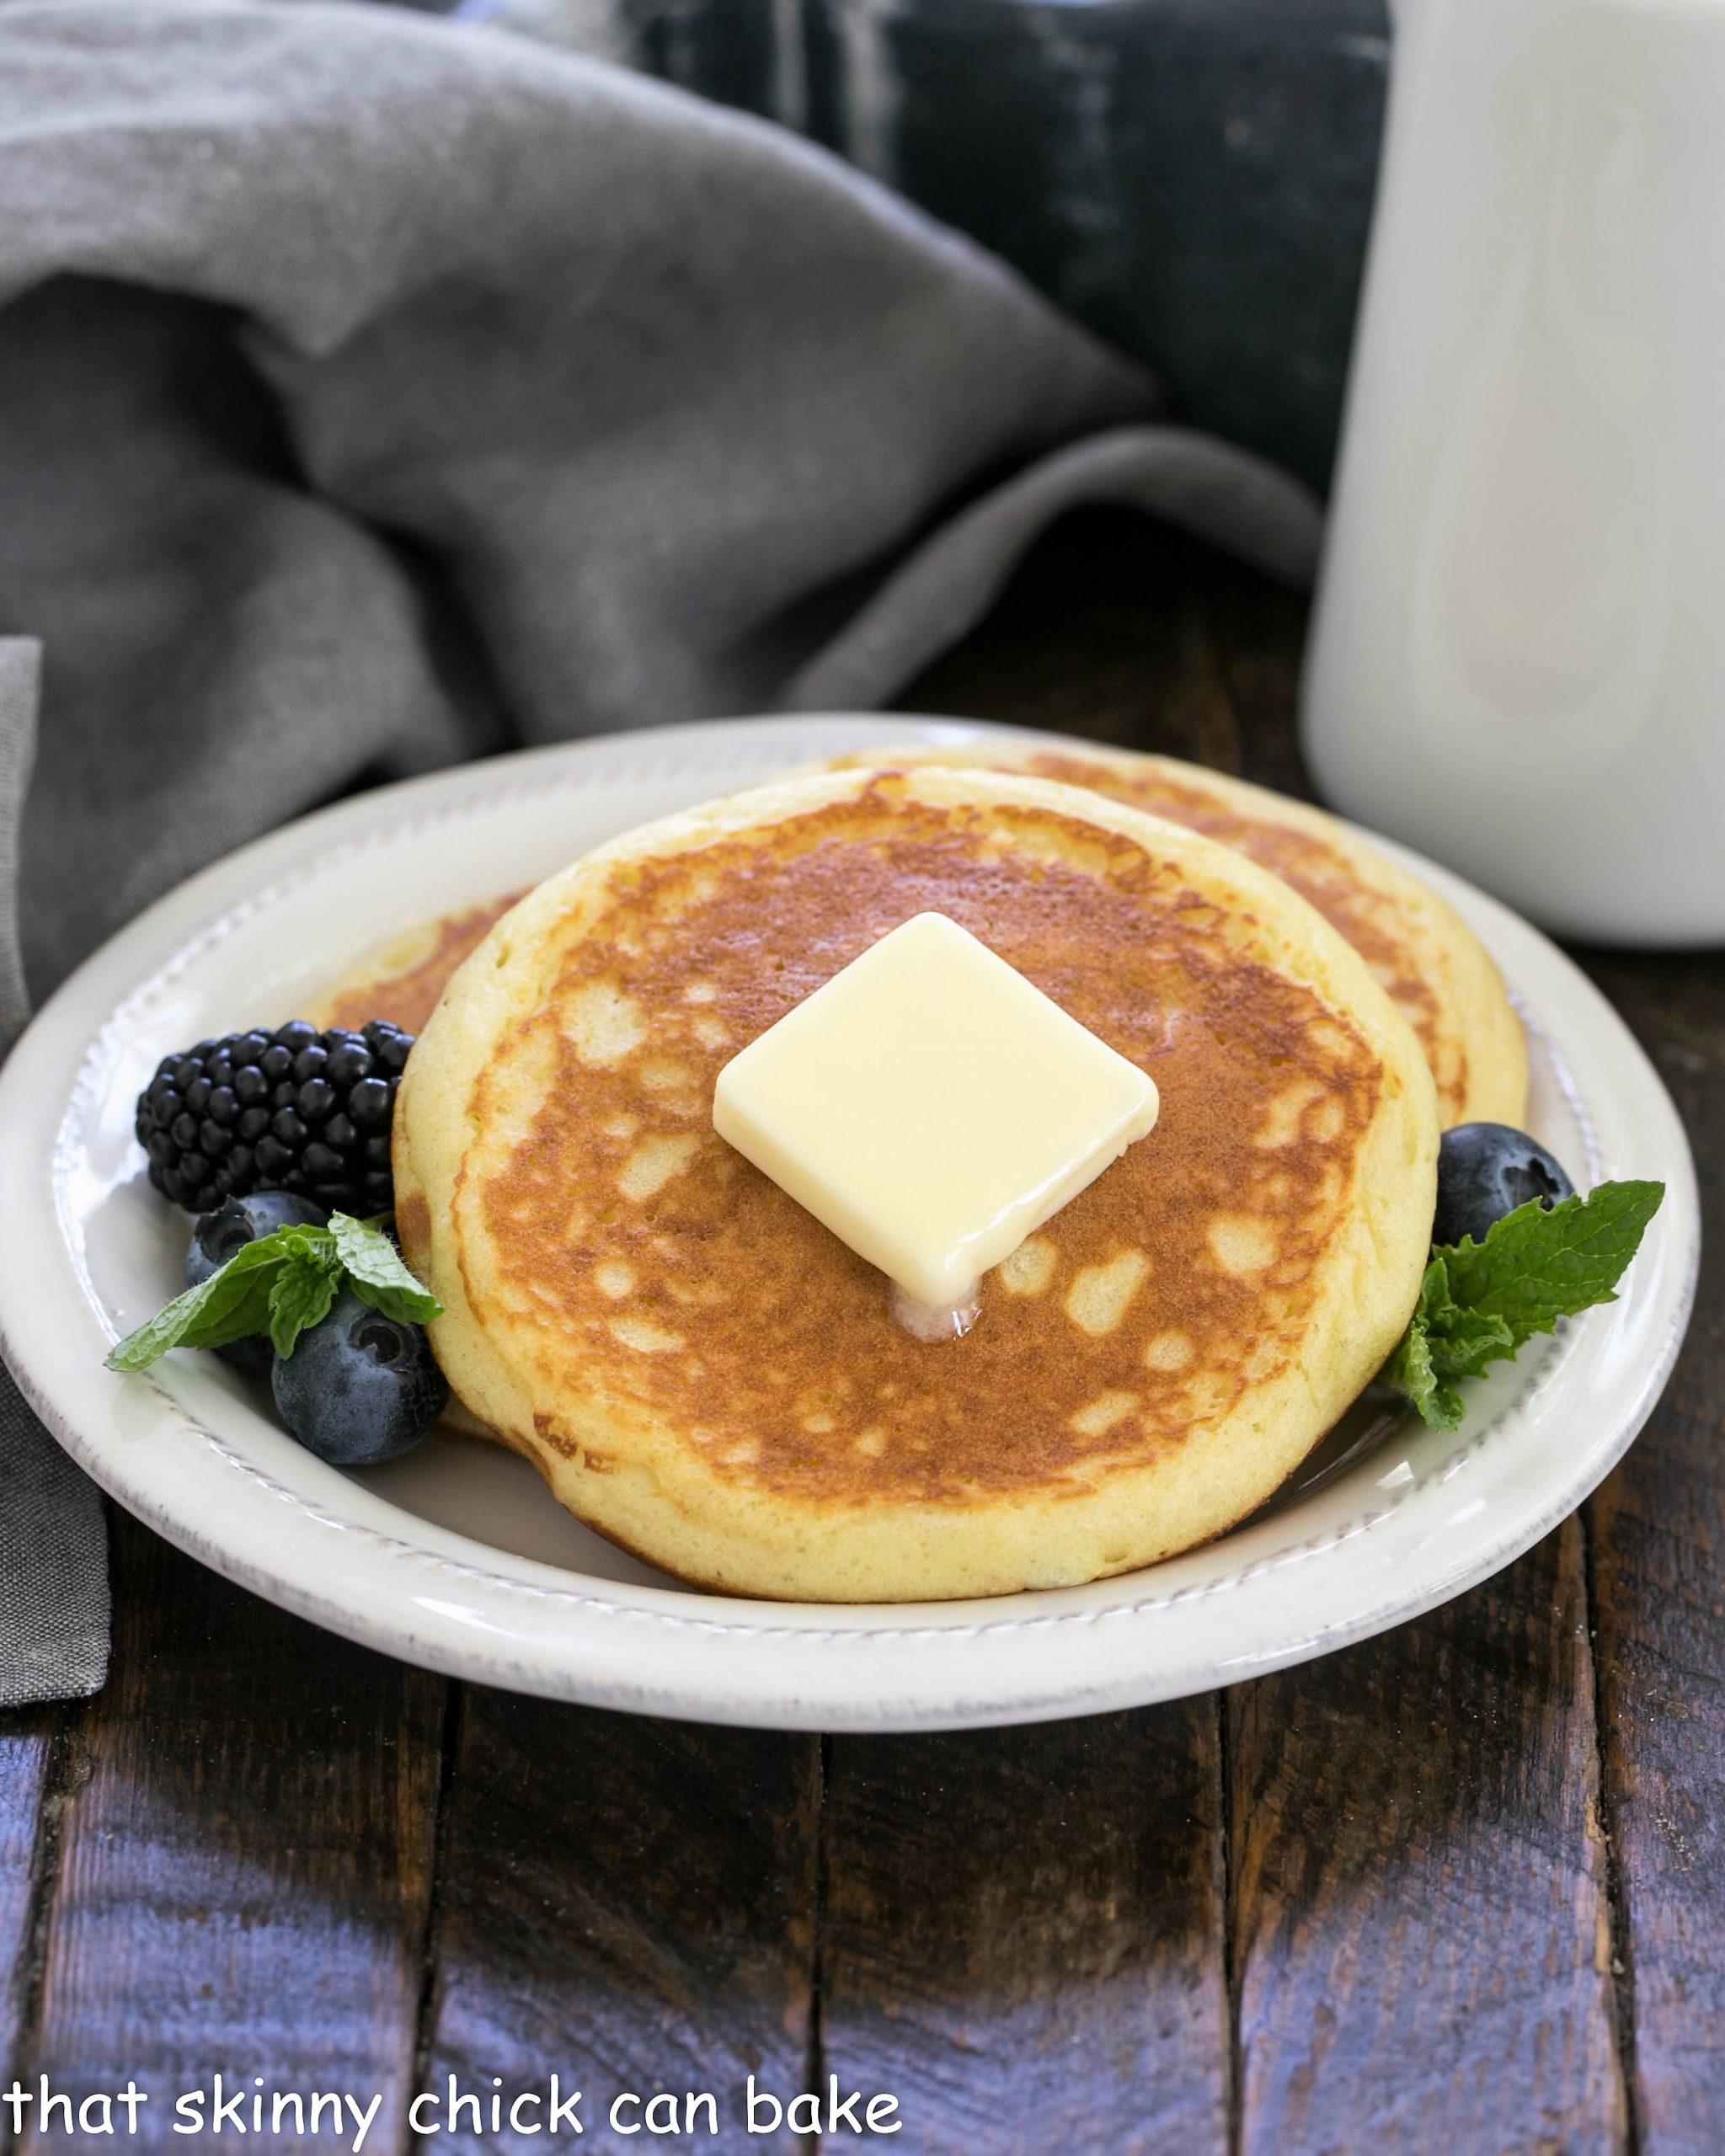 Buttermilk pancakew on a small white plate topped with butter and served with berries and mint